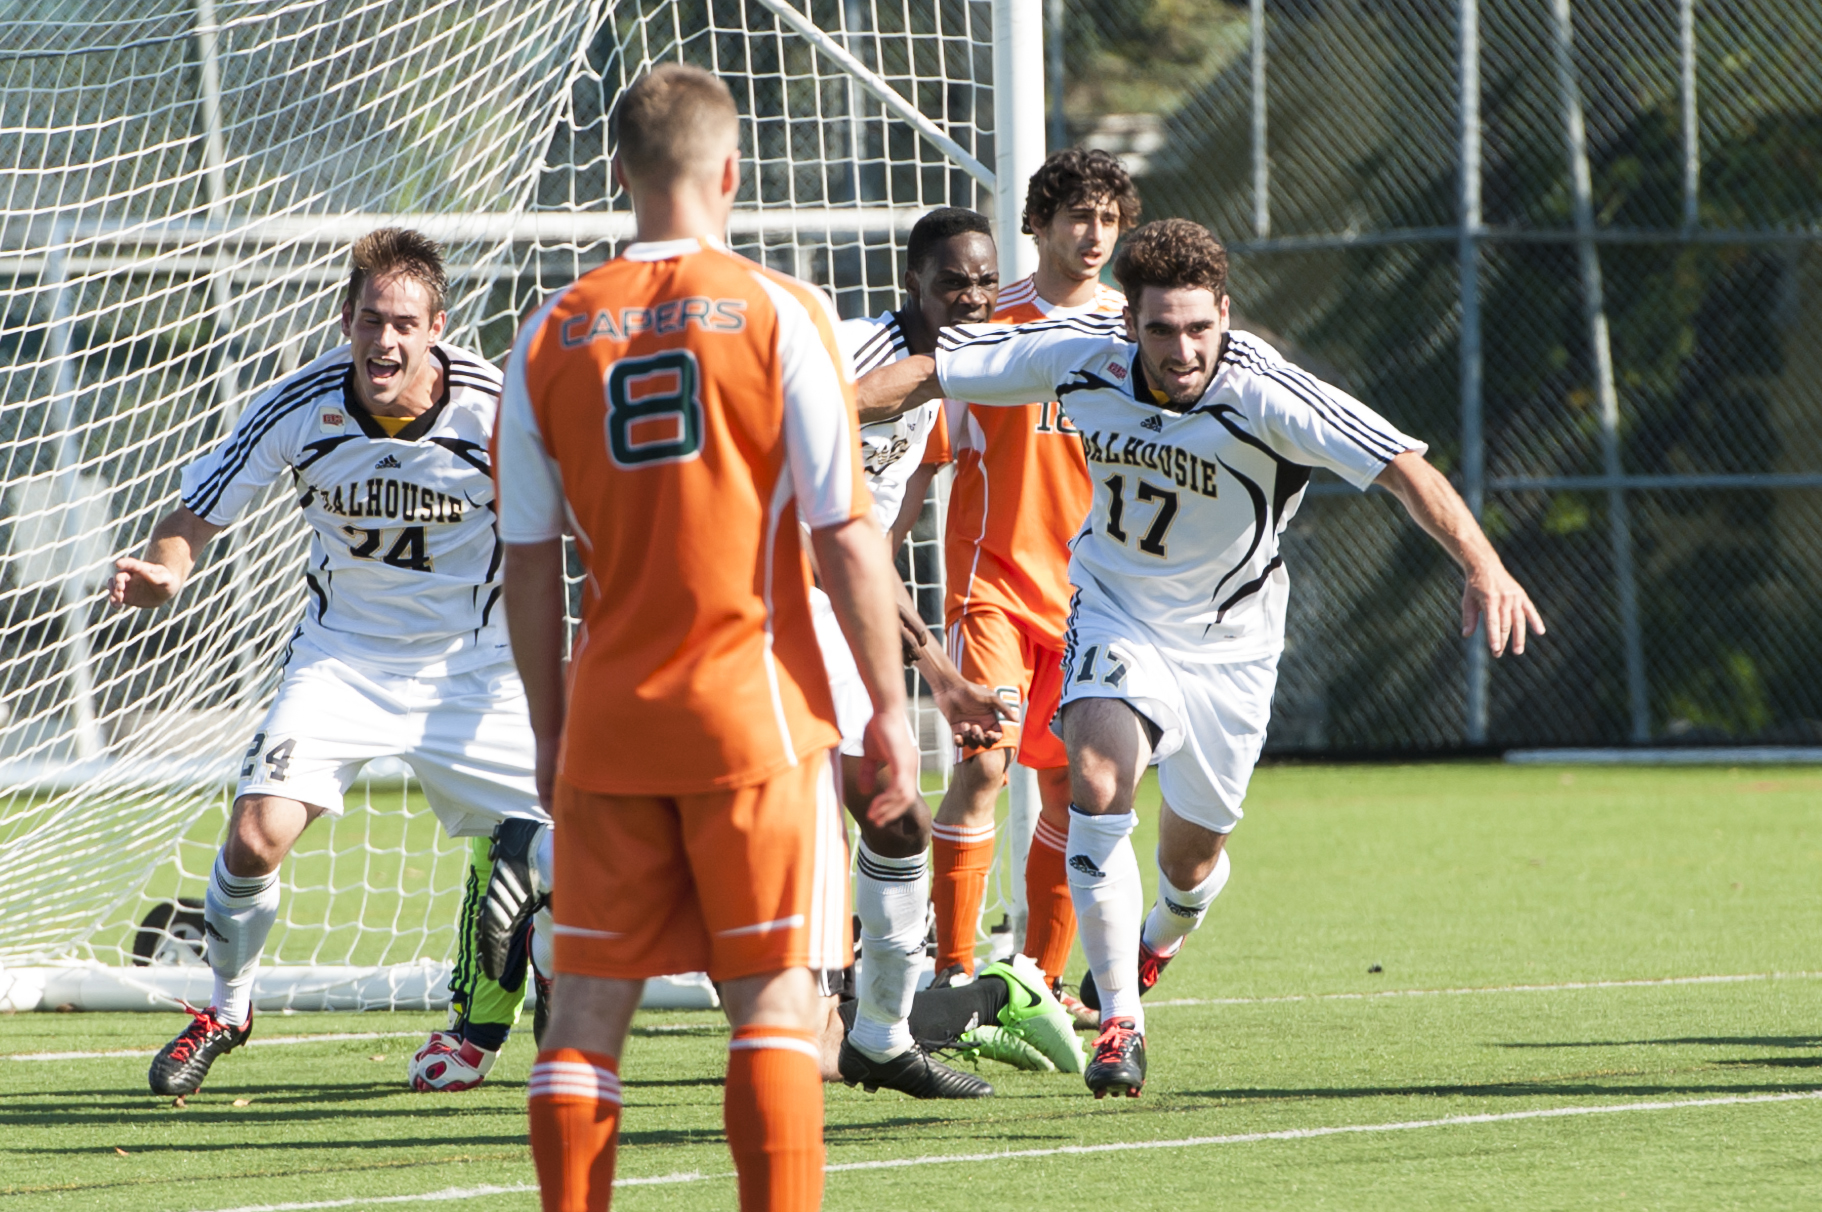 Tyler Lewars (17) celebrates after one of his two goals against CBU. (Photo by Chris Parent)